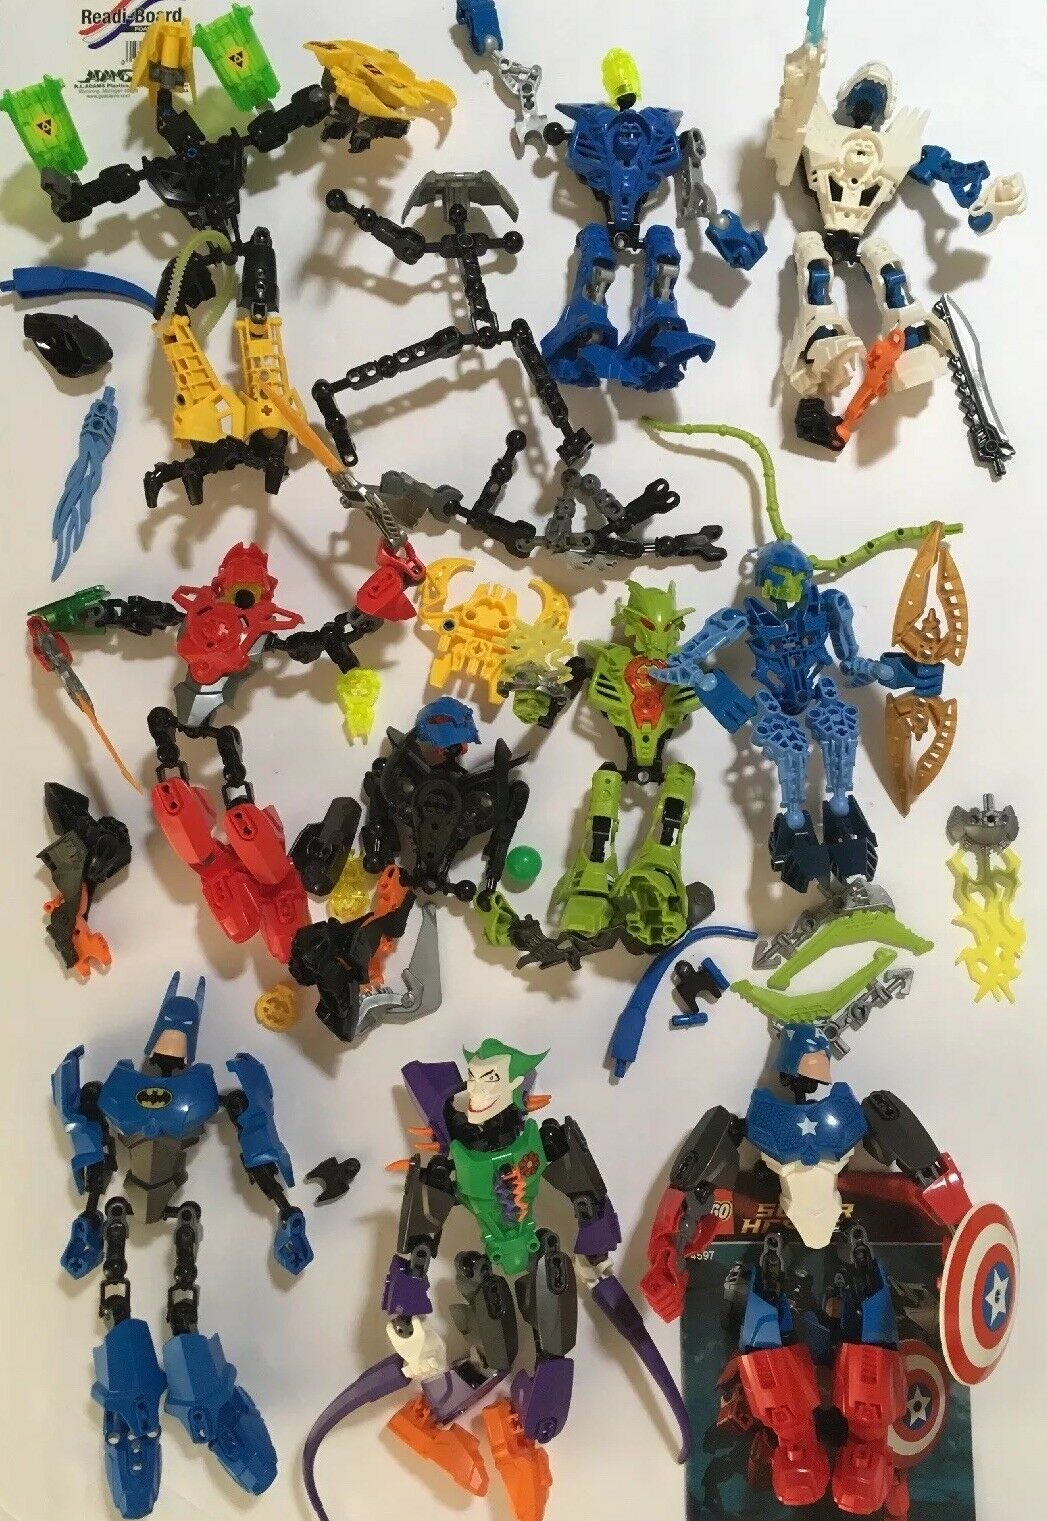 Mixed Lot Of Super Heroes Marvel Bionicle LEGO Action Figures And Parts